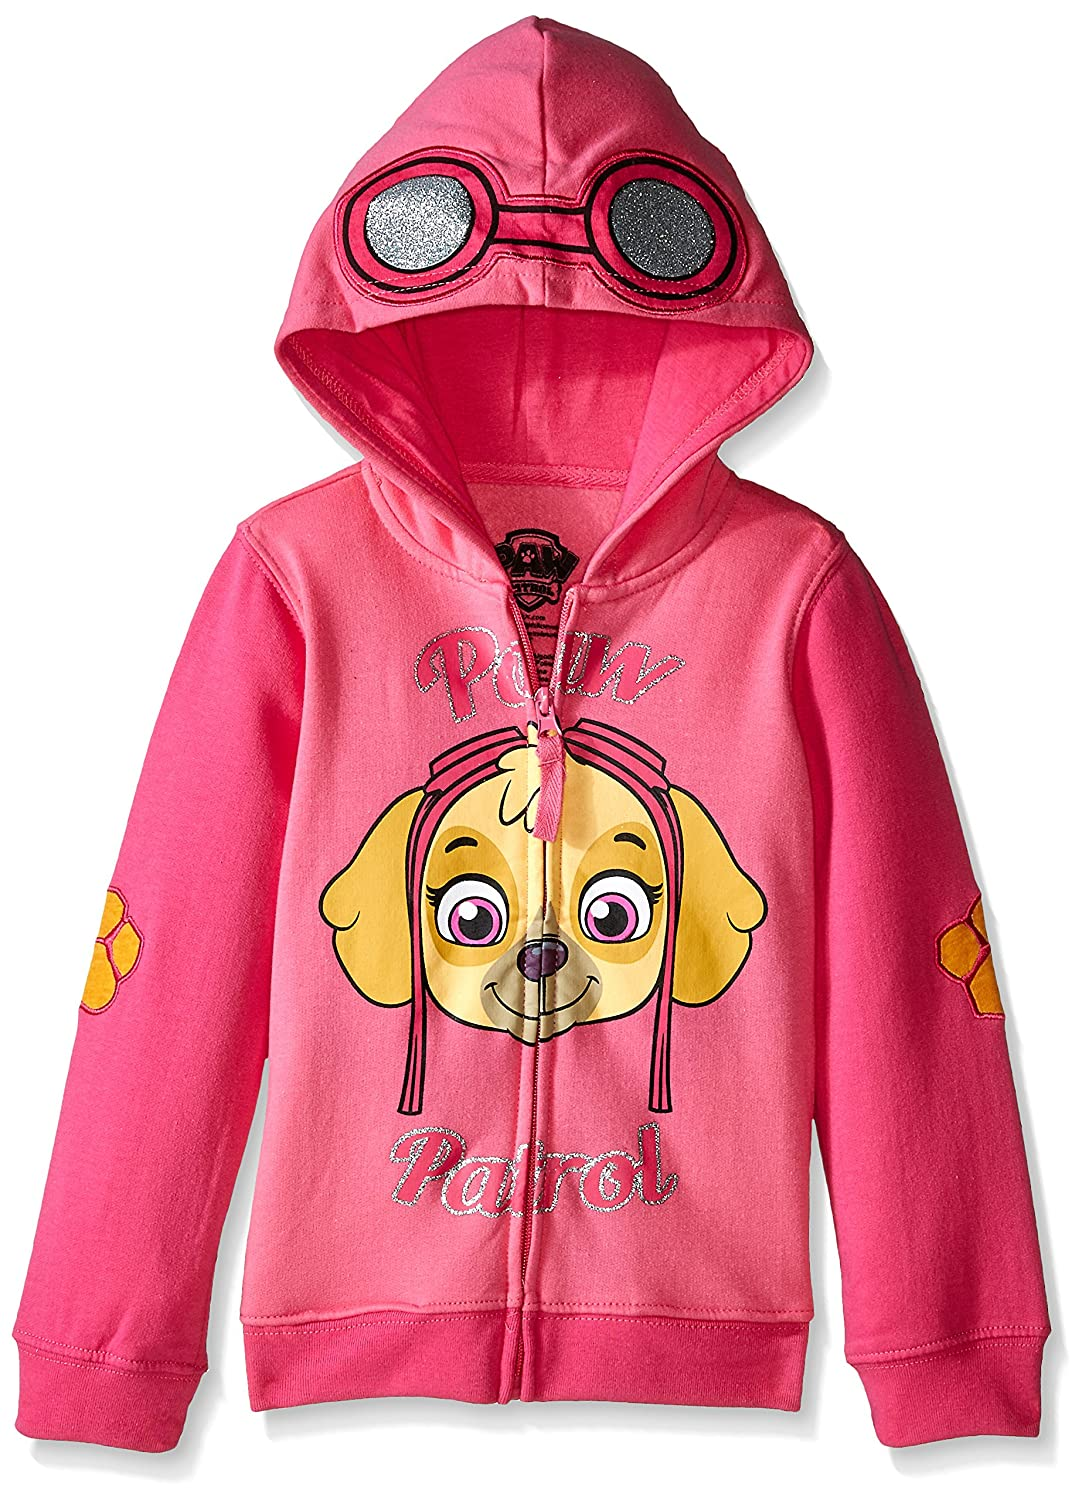 Nickelodeon Girls Toddler Girls Paw Patrol Skye Toddler Girl Hoodie Freeze Children' s Apparel ABST216-2T07